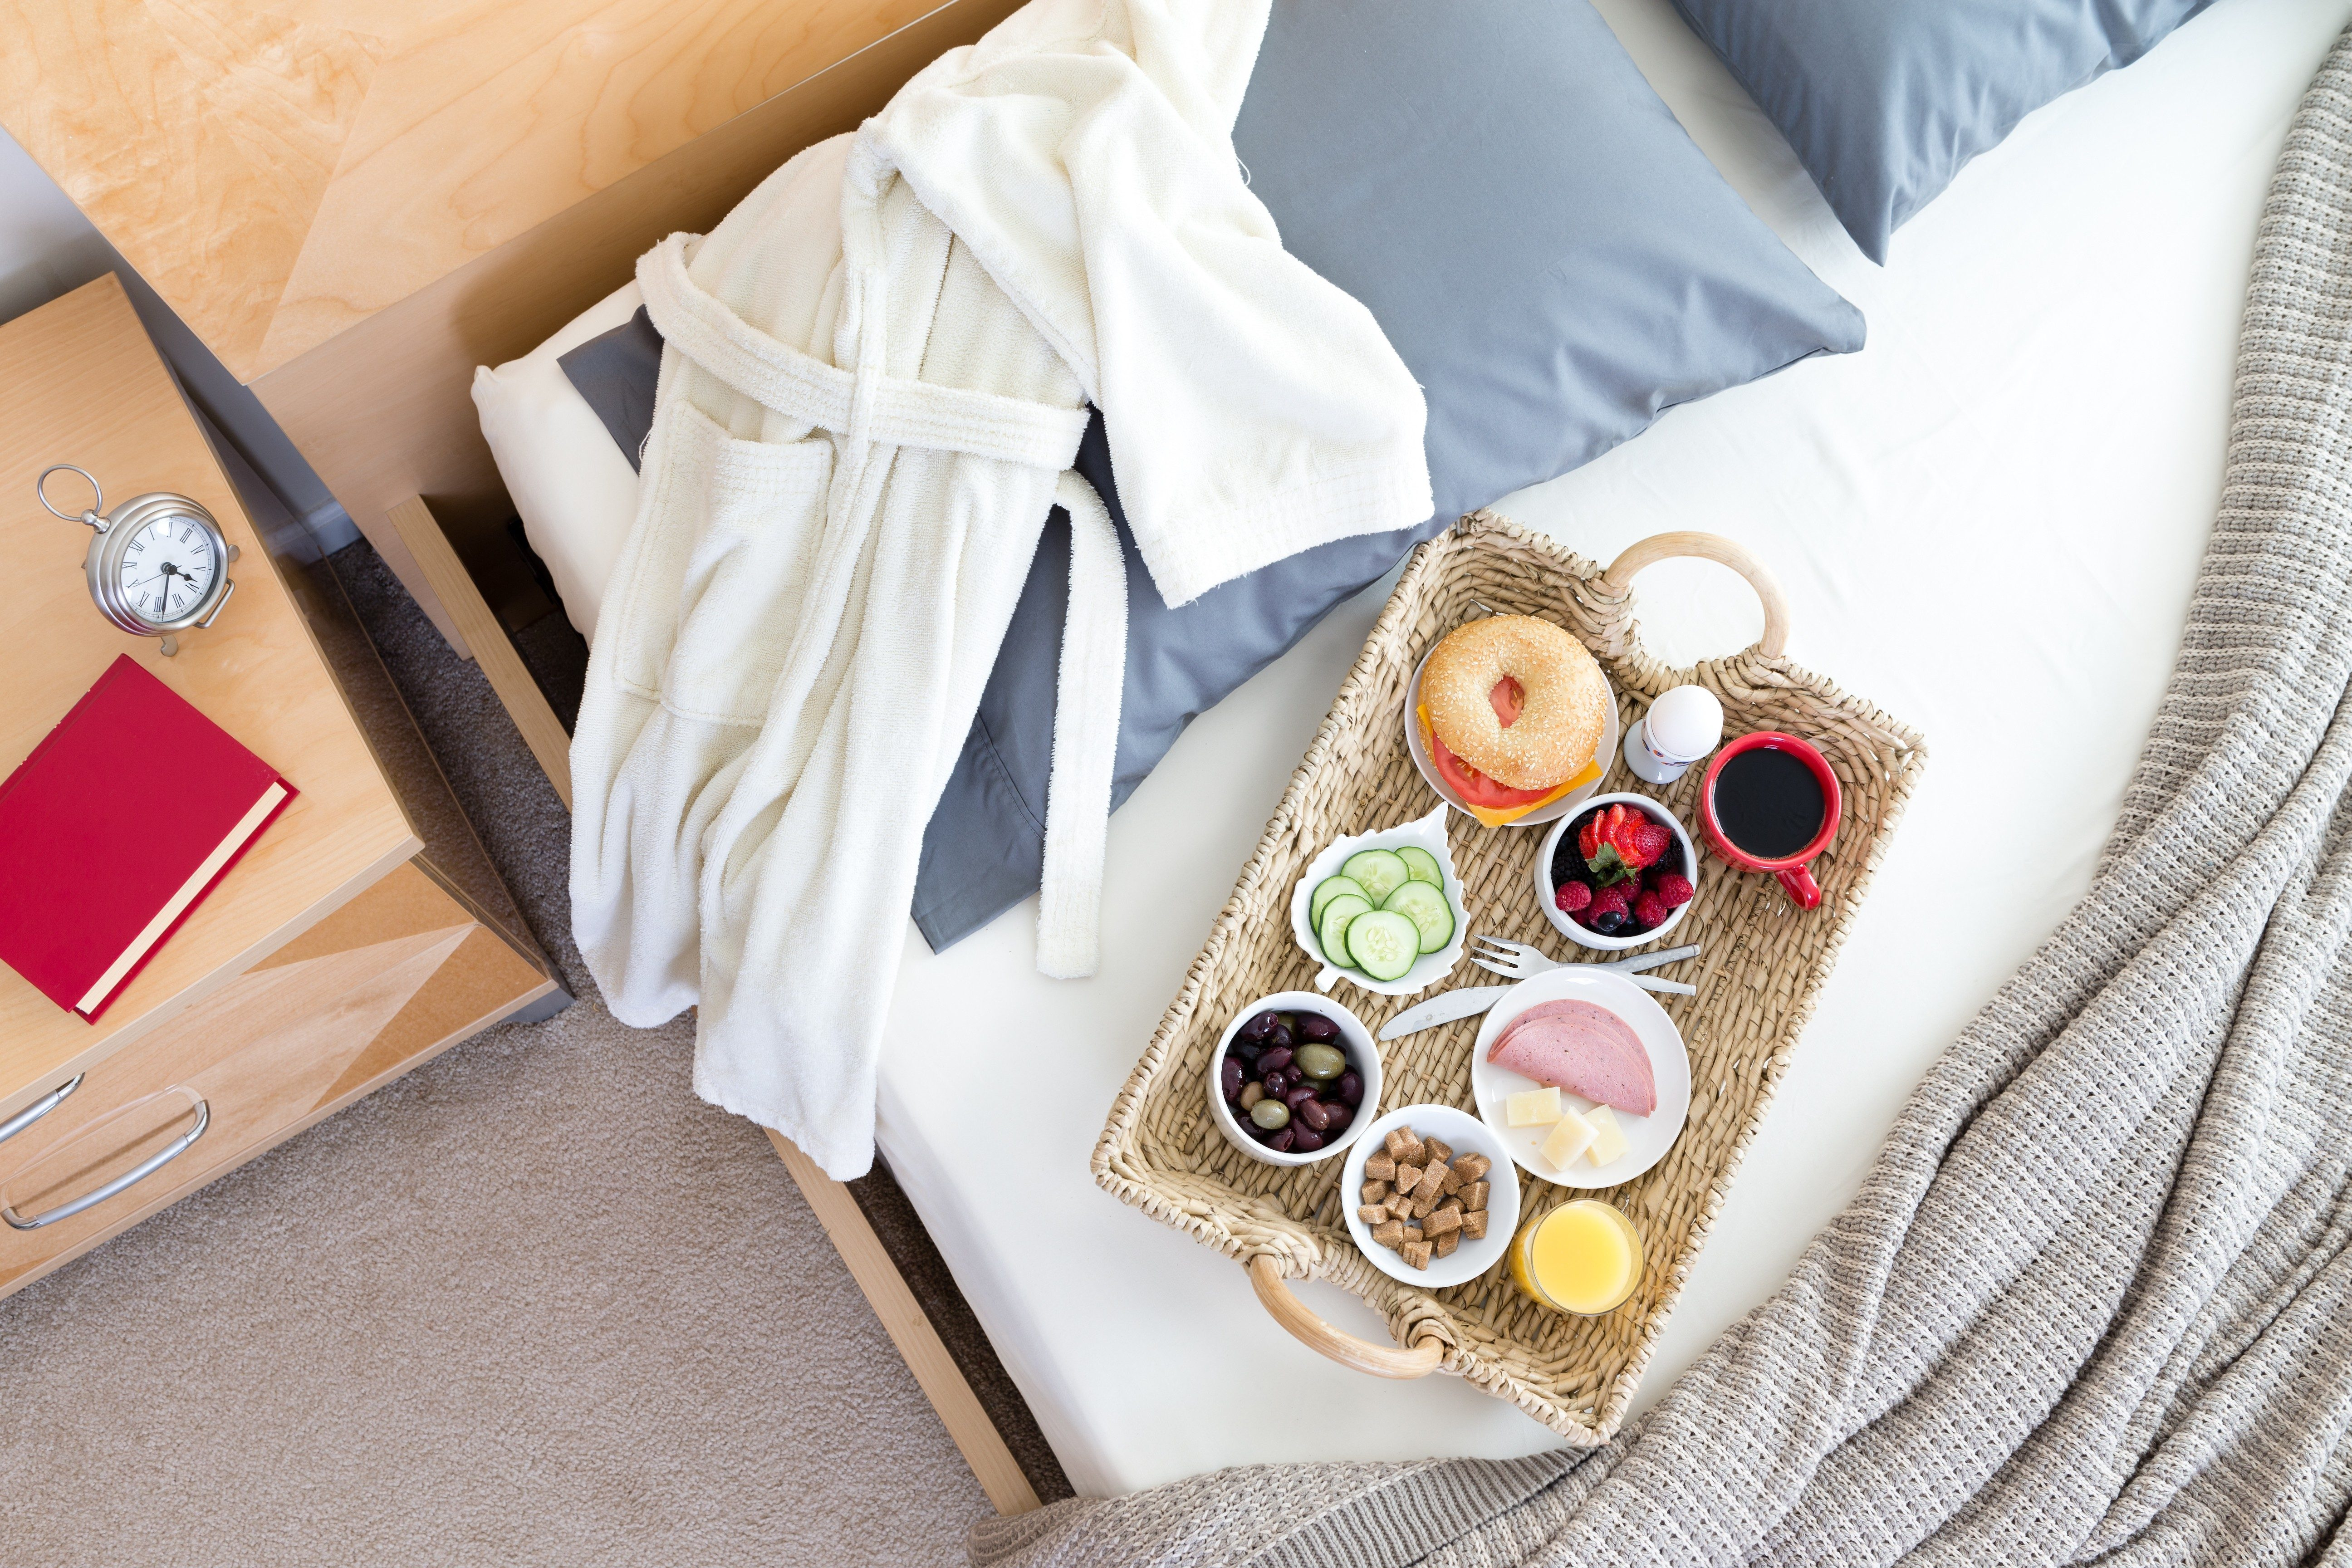 High Angle View of Bathrobe and Breakfast Tray on Unmade Bed Beside Night Table with Red Book in Hotel Room